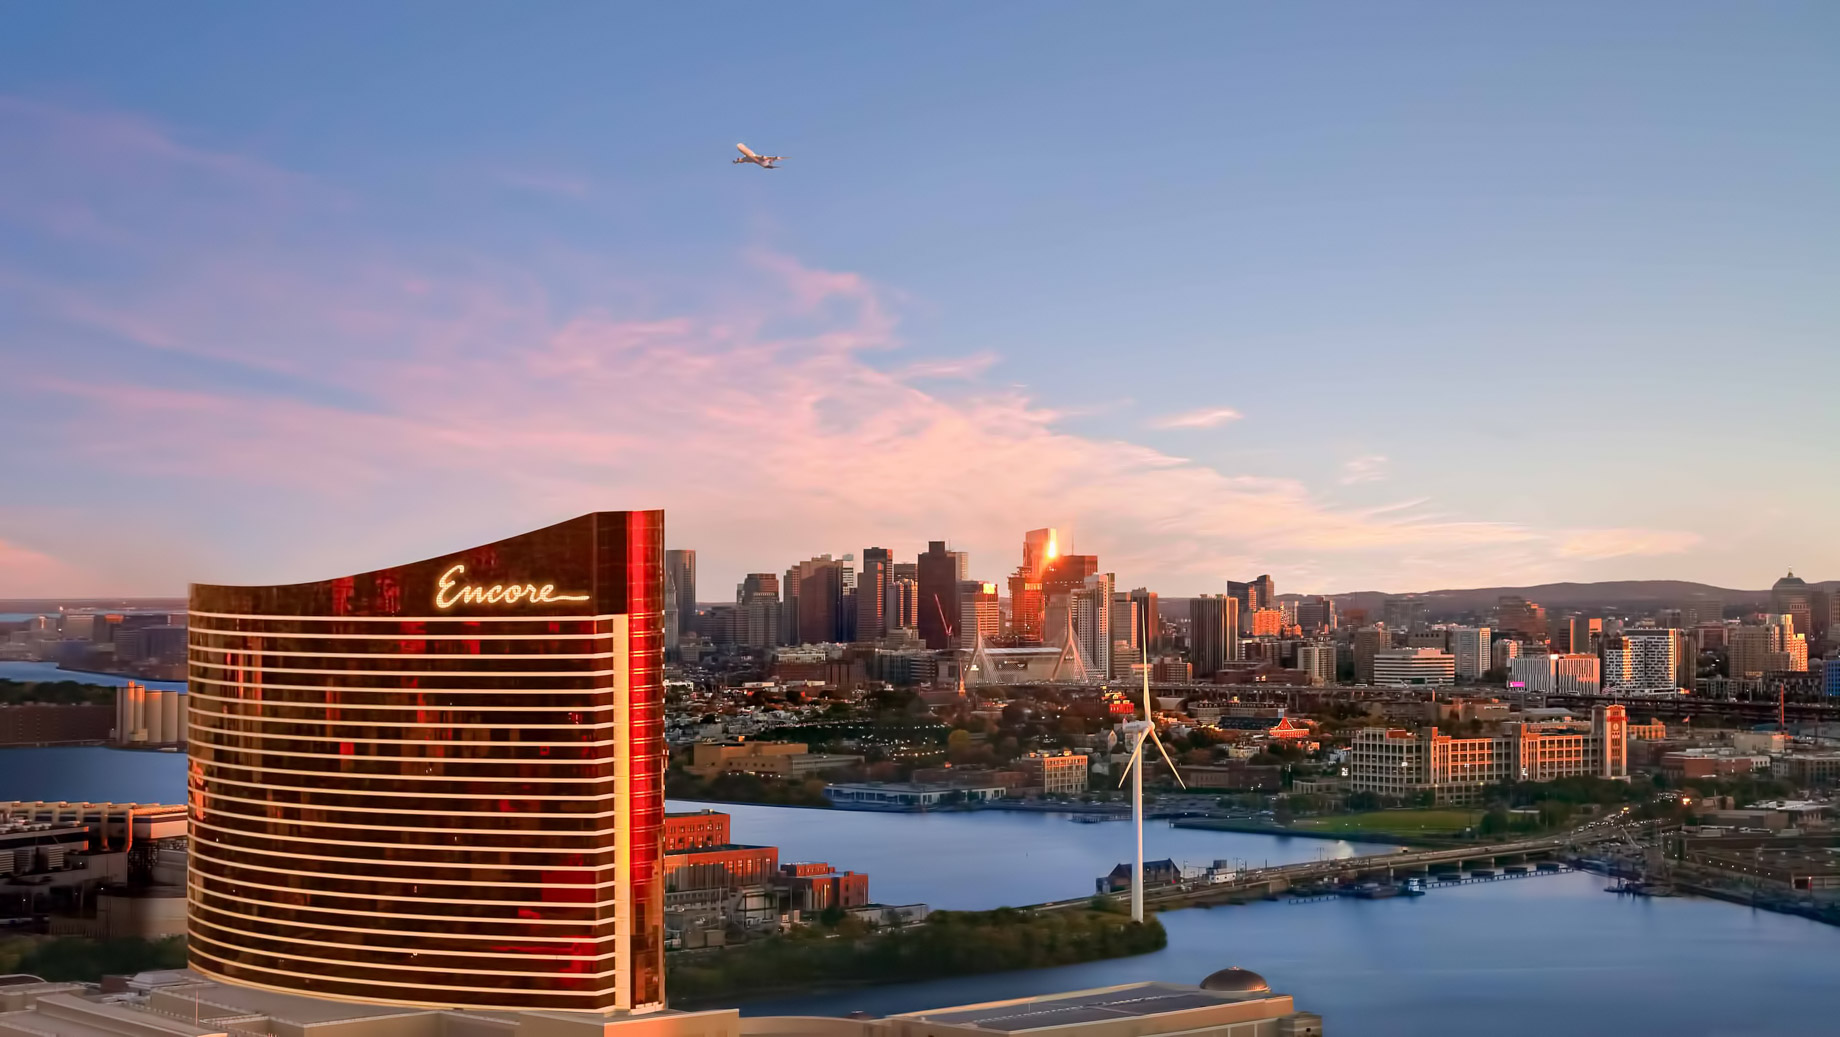 Encore Boston Harbour - Billion Dollar Buildings - The Most Expensive Casino Properties in the World